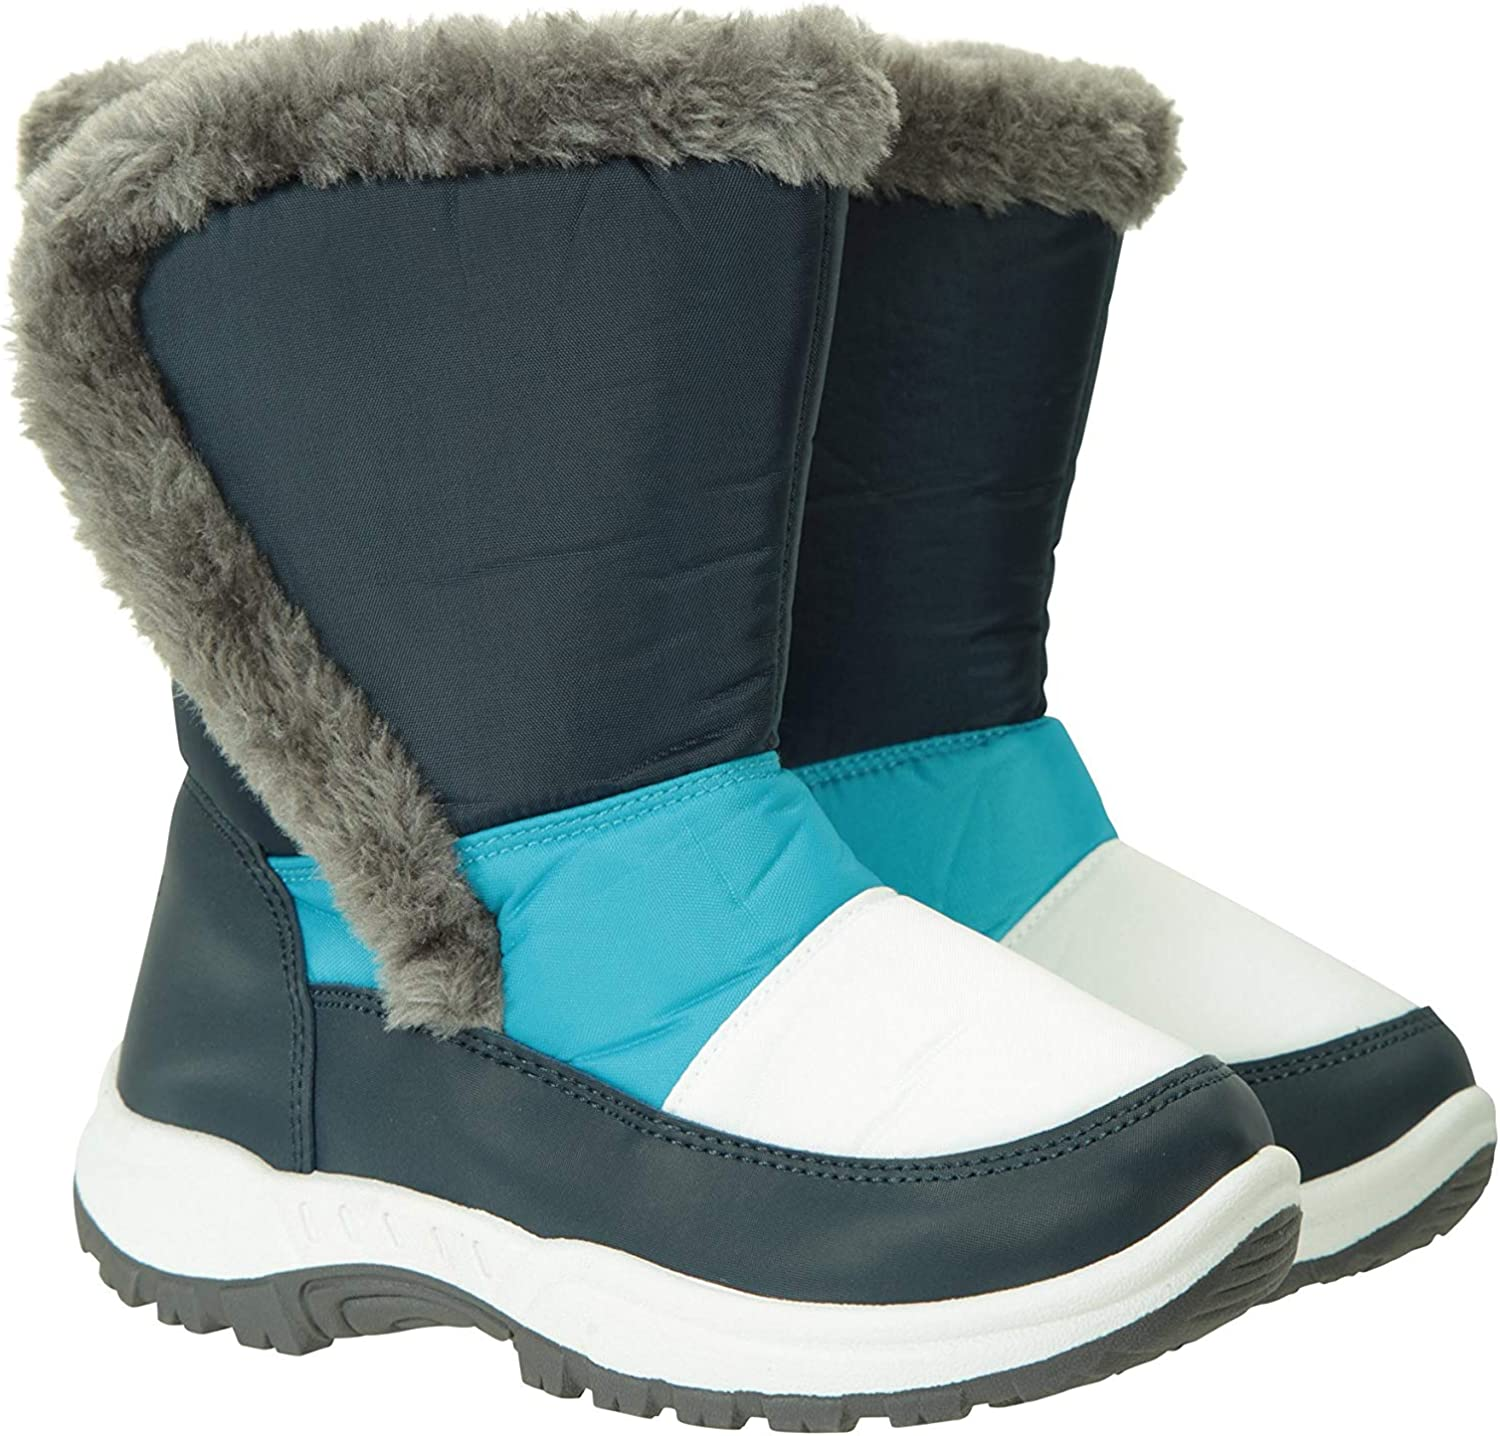 Mountain Warehouse Max 40% OFF Caribou Kids Snow - Girls Winter Boots Boys Free shipping / New